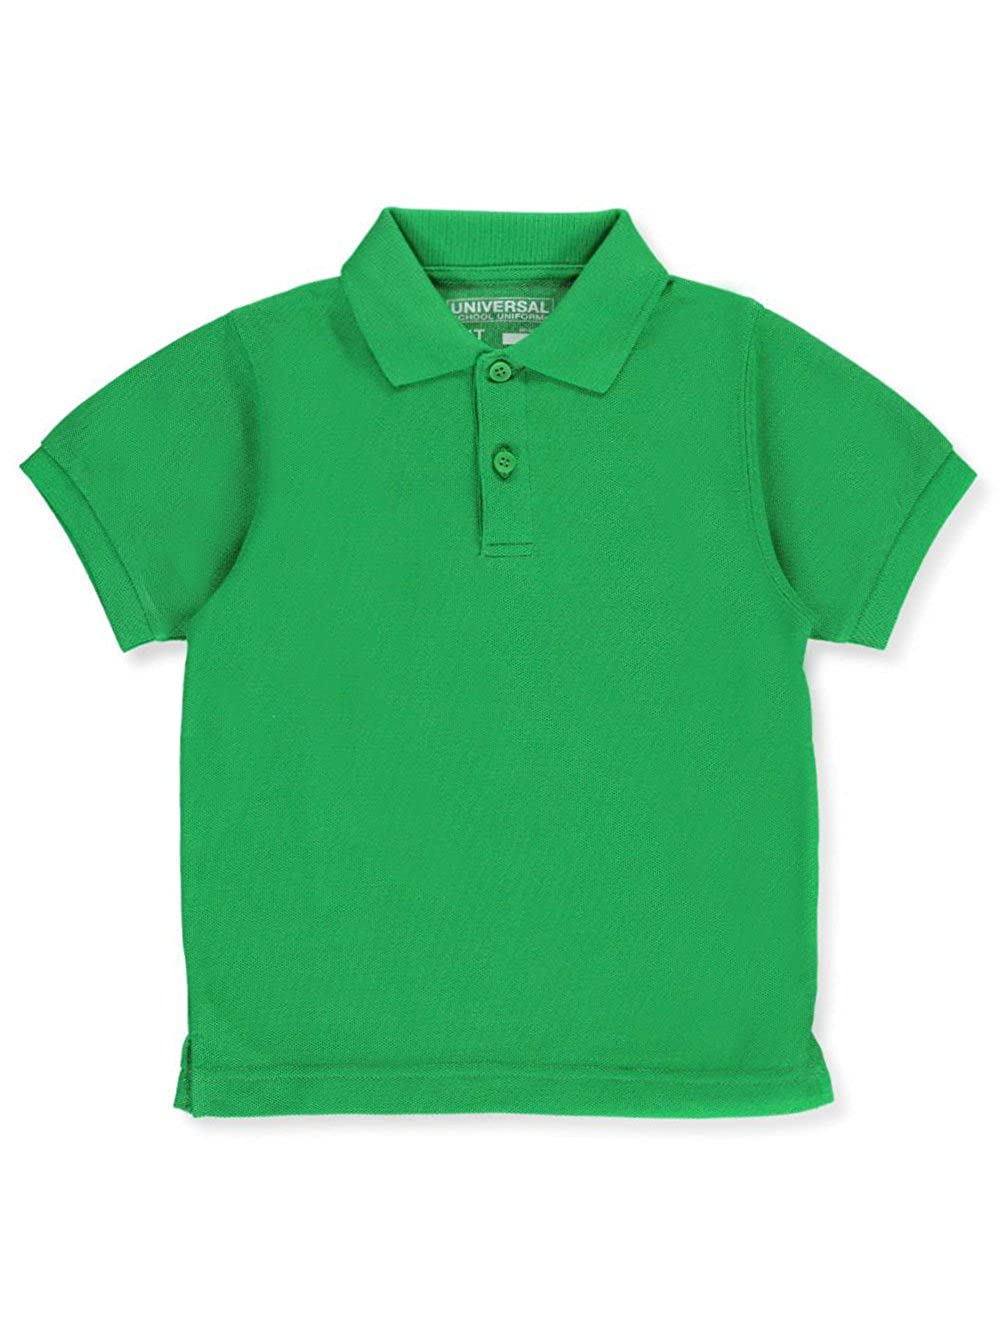 Universal School Uniform Baby Boys Short Sleeve Pique Polo